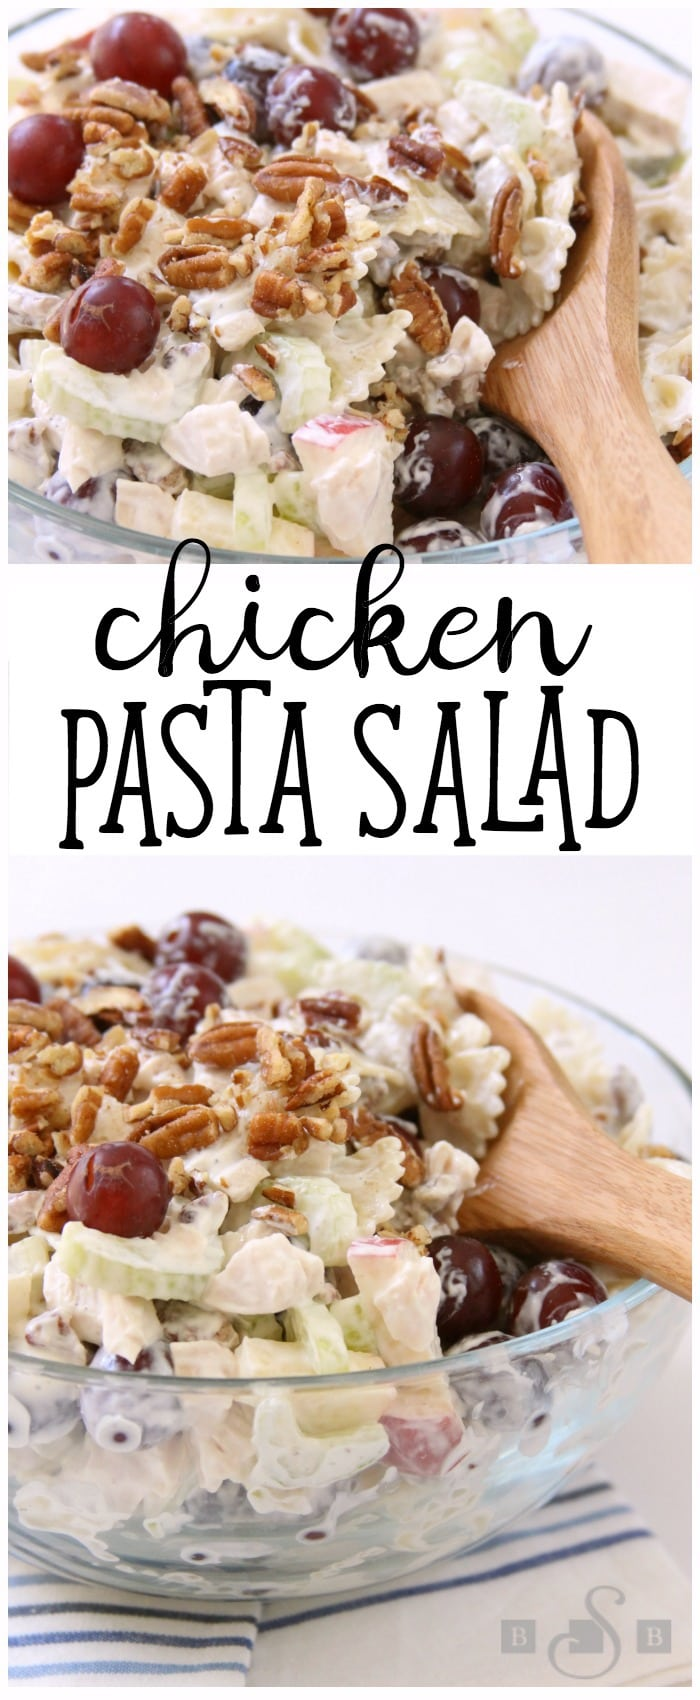 Chicken Pasta Salad is a lovely summer meal filled with tender chicken, apples, grapes, celery & pecans. Our Chicken Pasta Salad recipe is topped with a light dressing & chopped pecans.